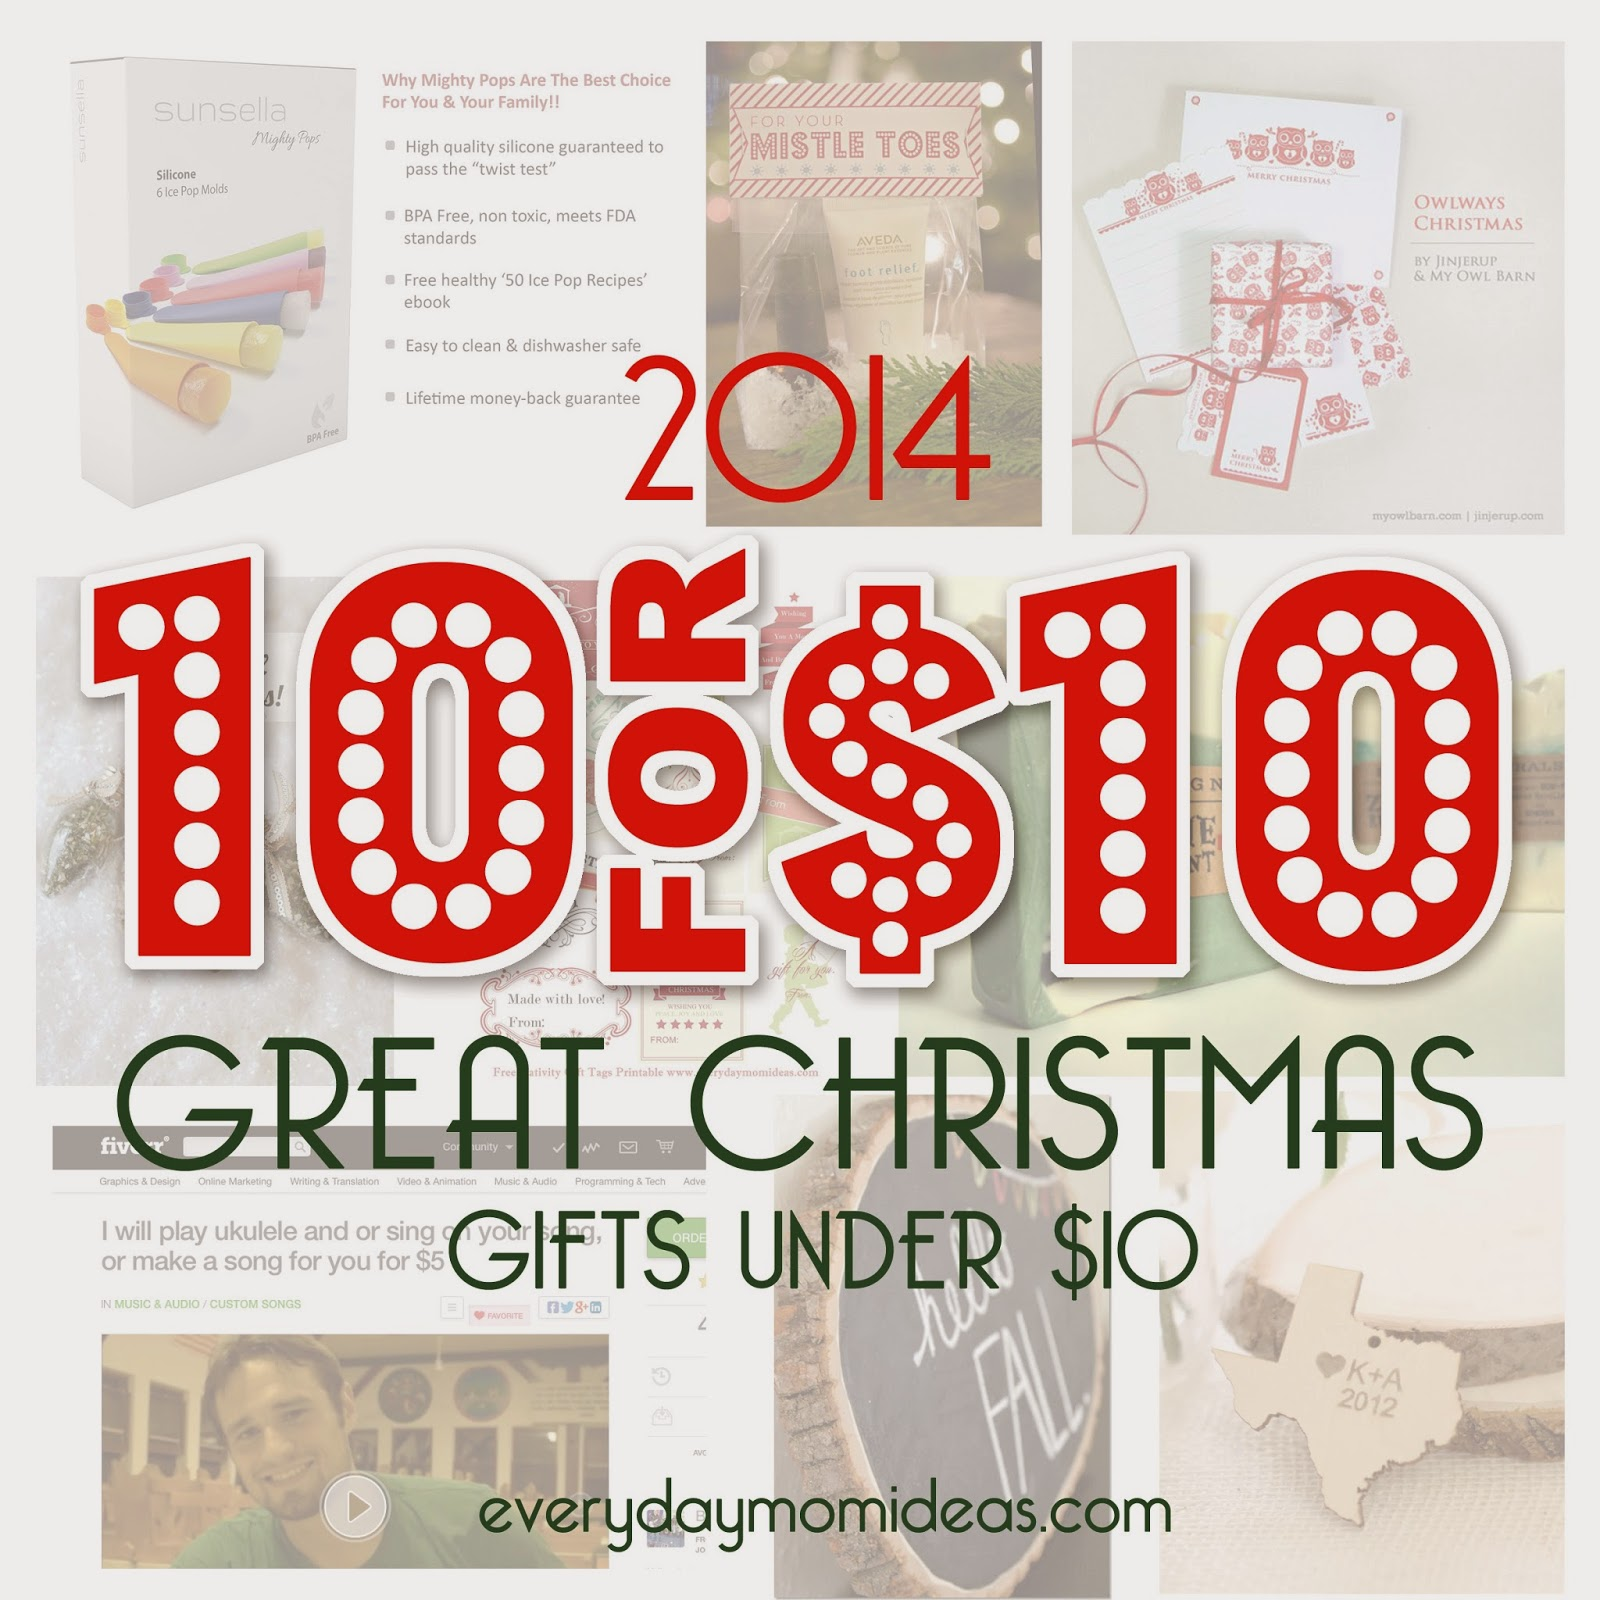 10 Unique Christmas Gifts Under $10! (2014 gift guide) - Everyday ...